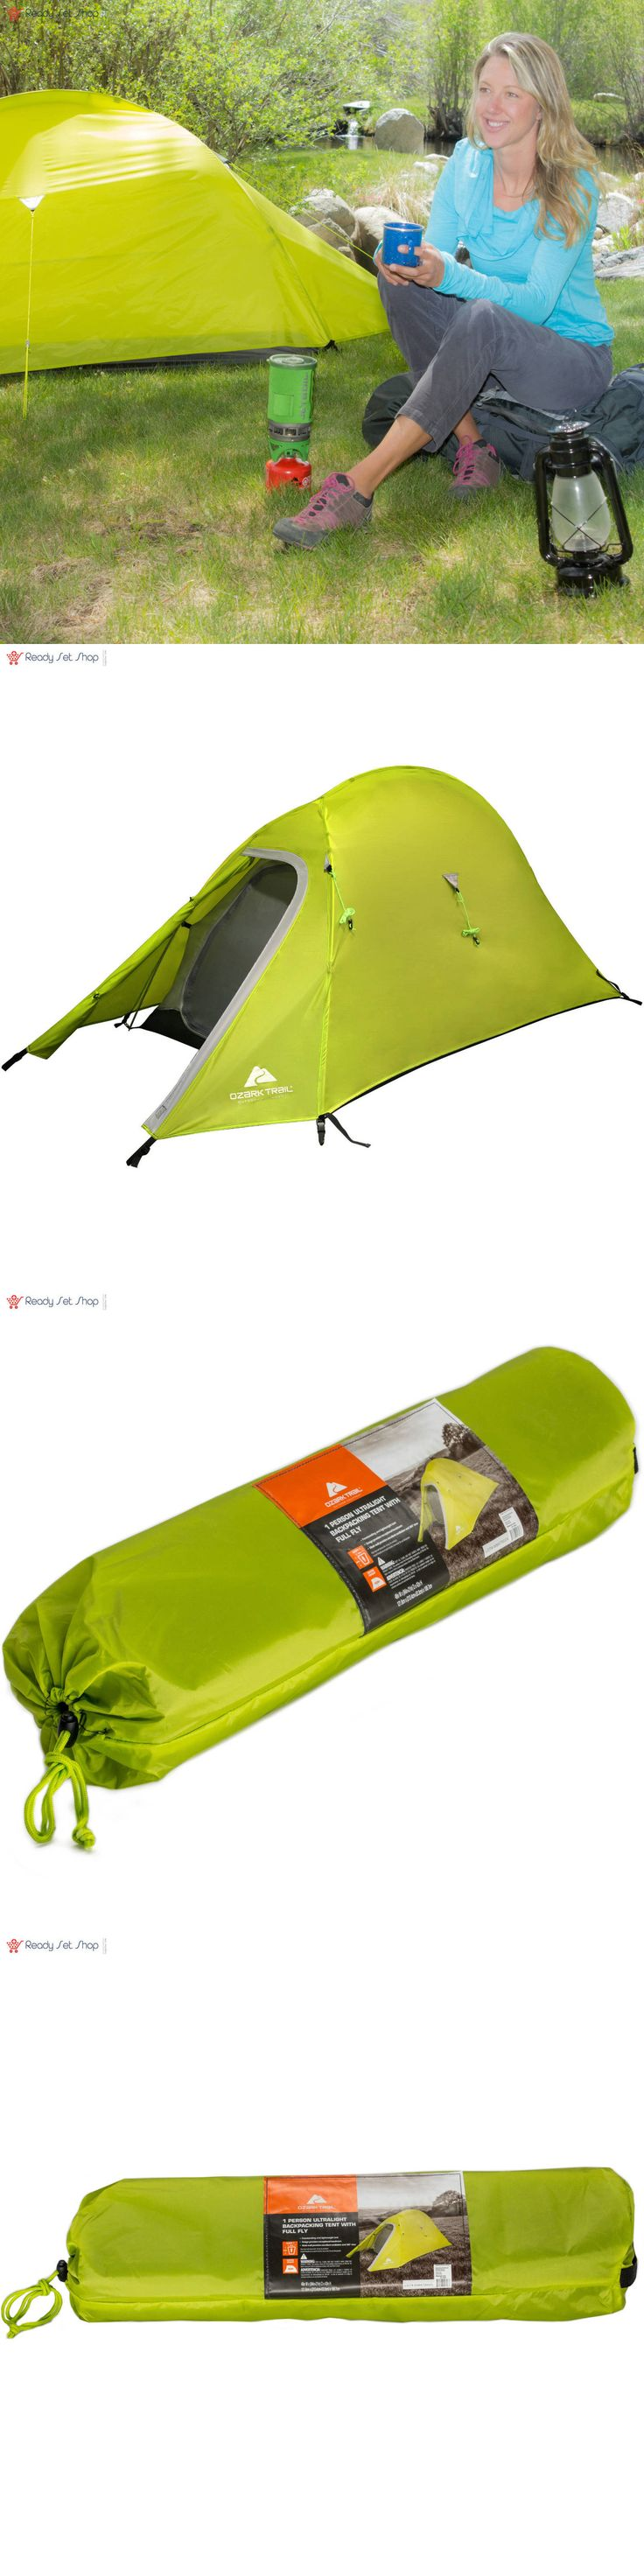 Tents 179010: Ozark Trail Ultra Light Back Packing 4 X 7 X 42 Tent With Full Fly, Sleeps 1 -> BUY IT NOW ONLY: $46.31 on eBay!